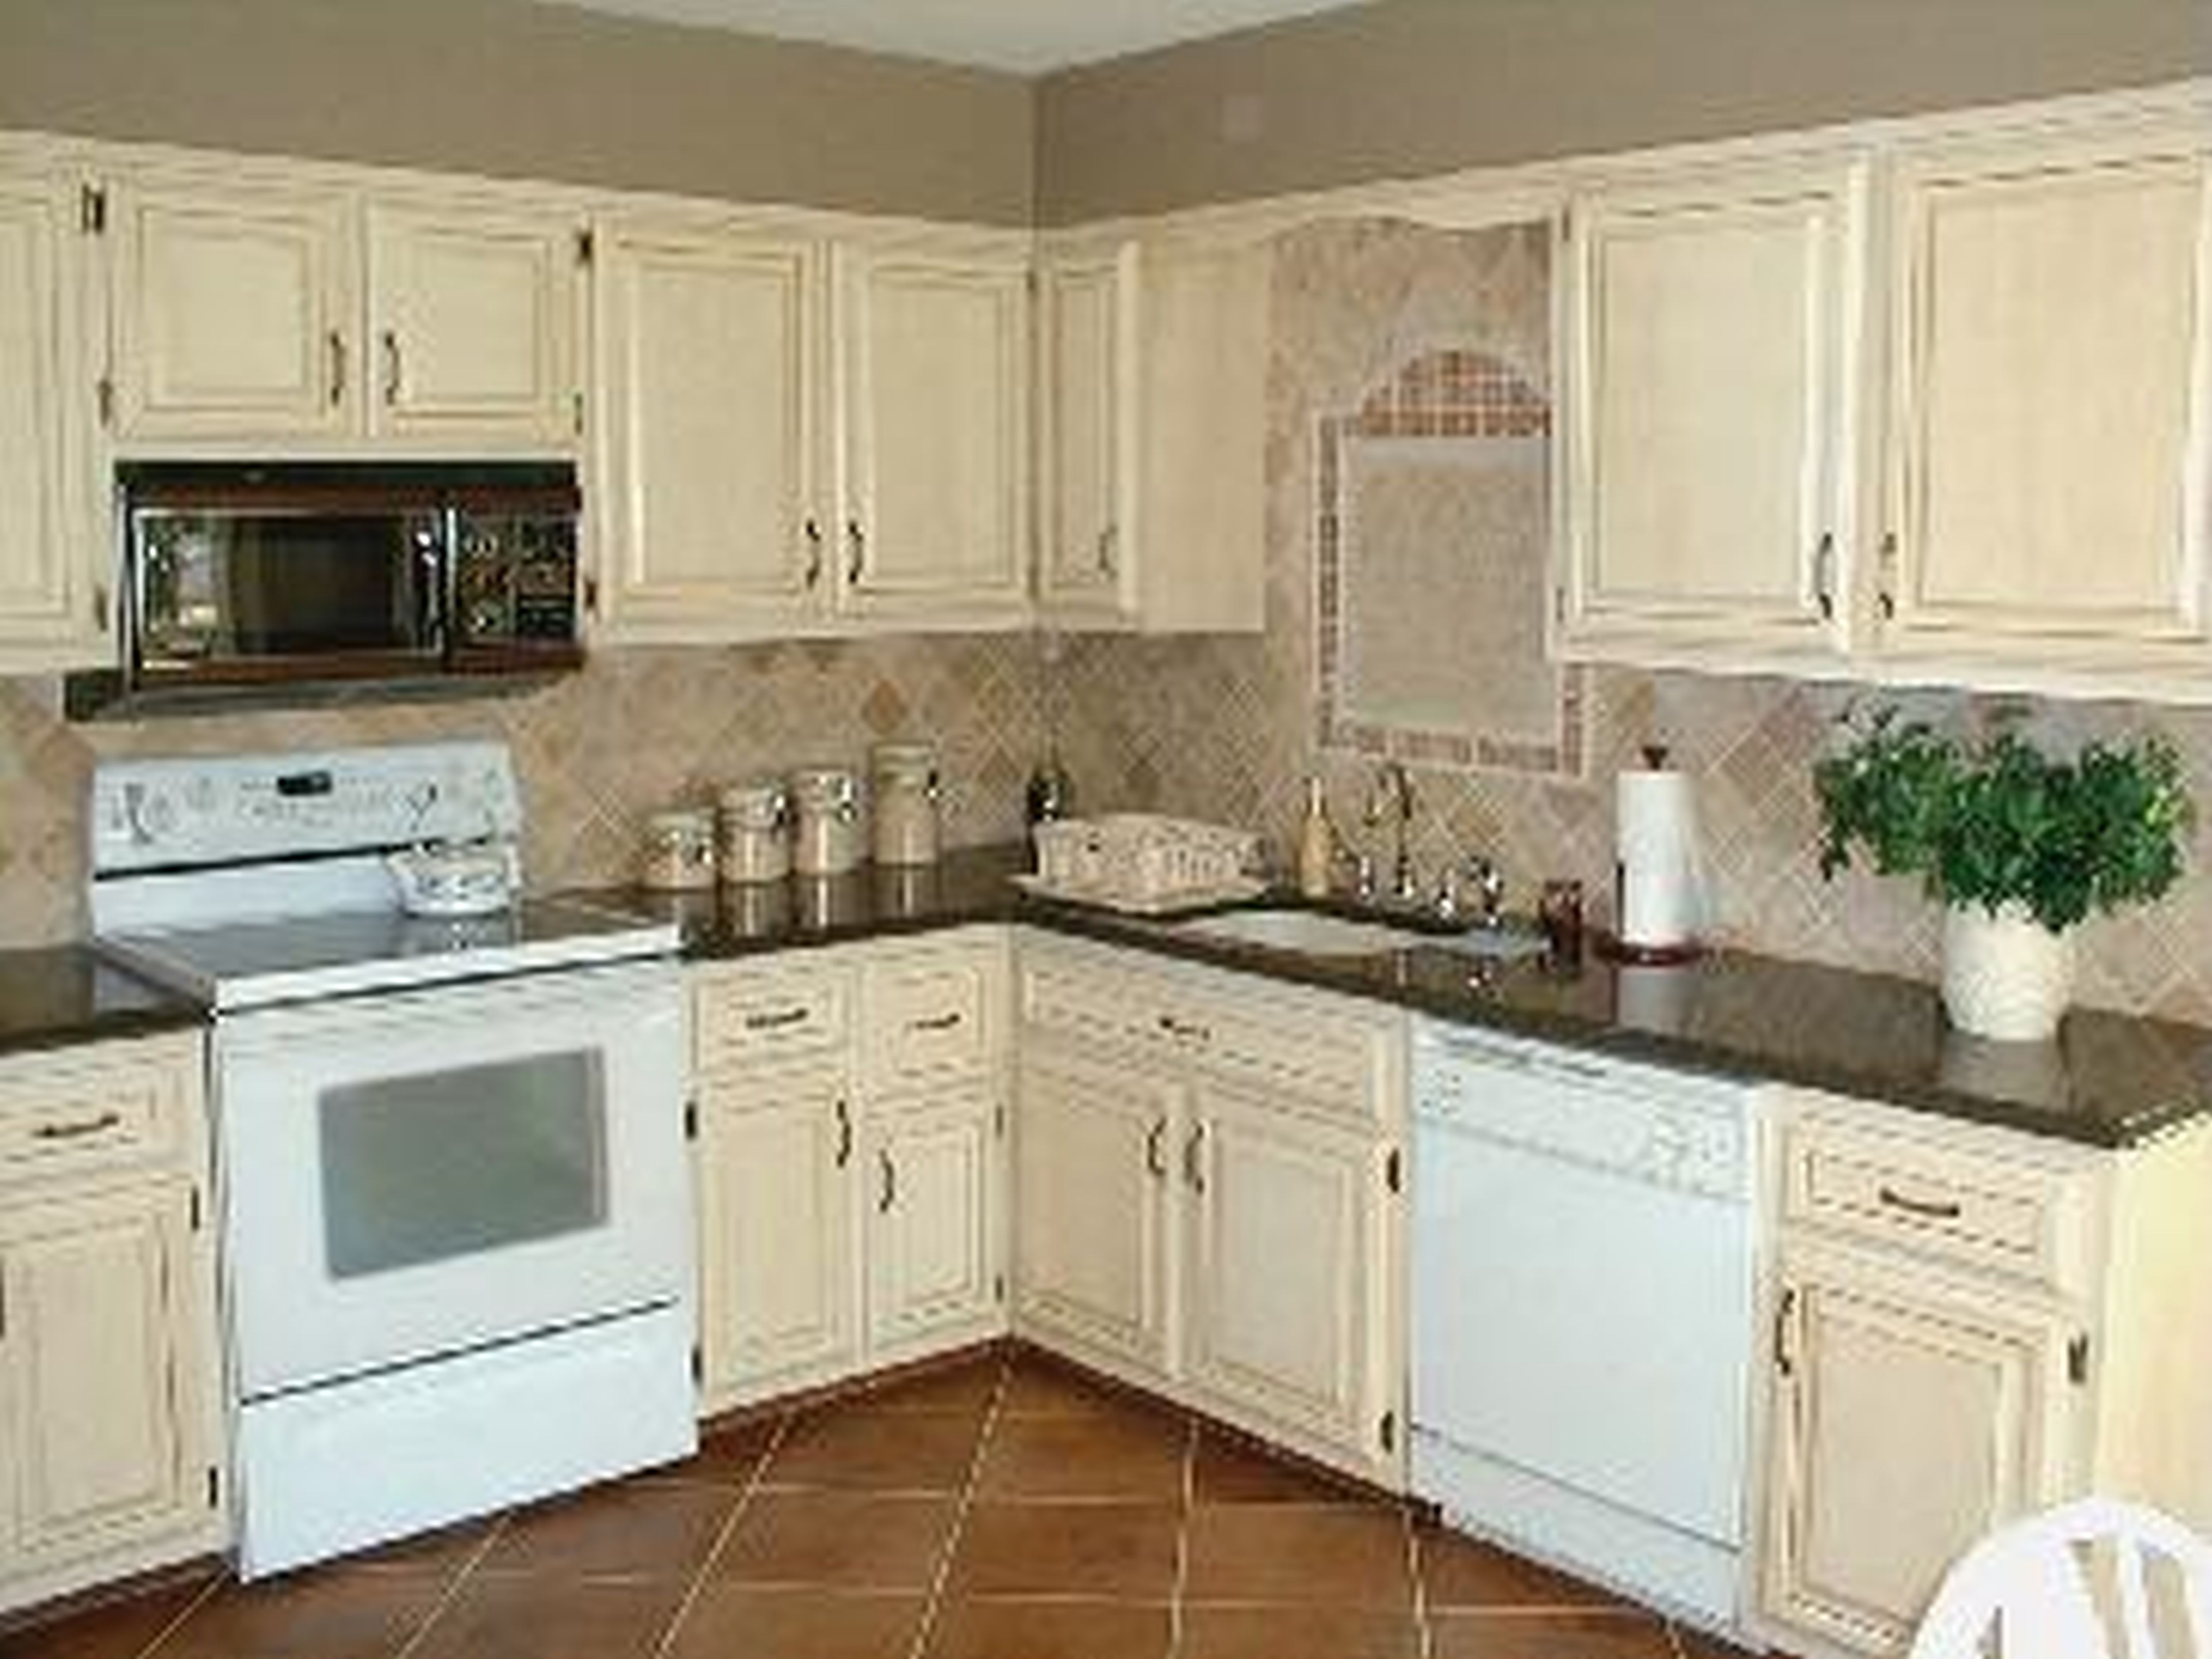 CoolKitchenColors2015InsightInspiringSubwayTile